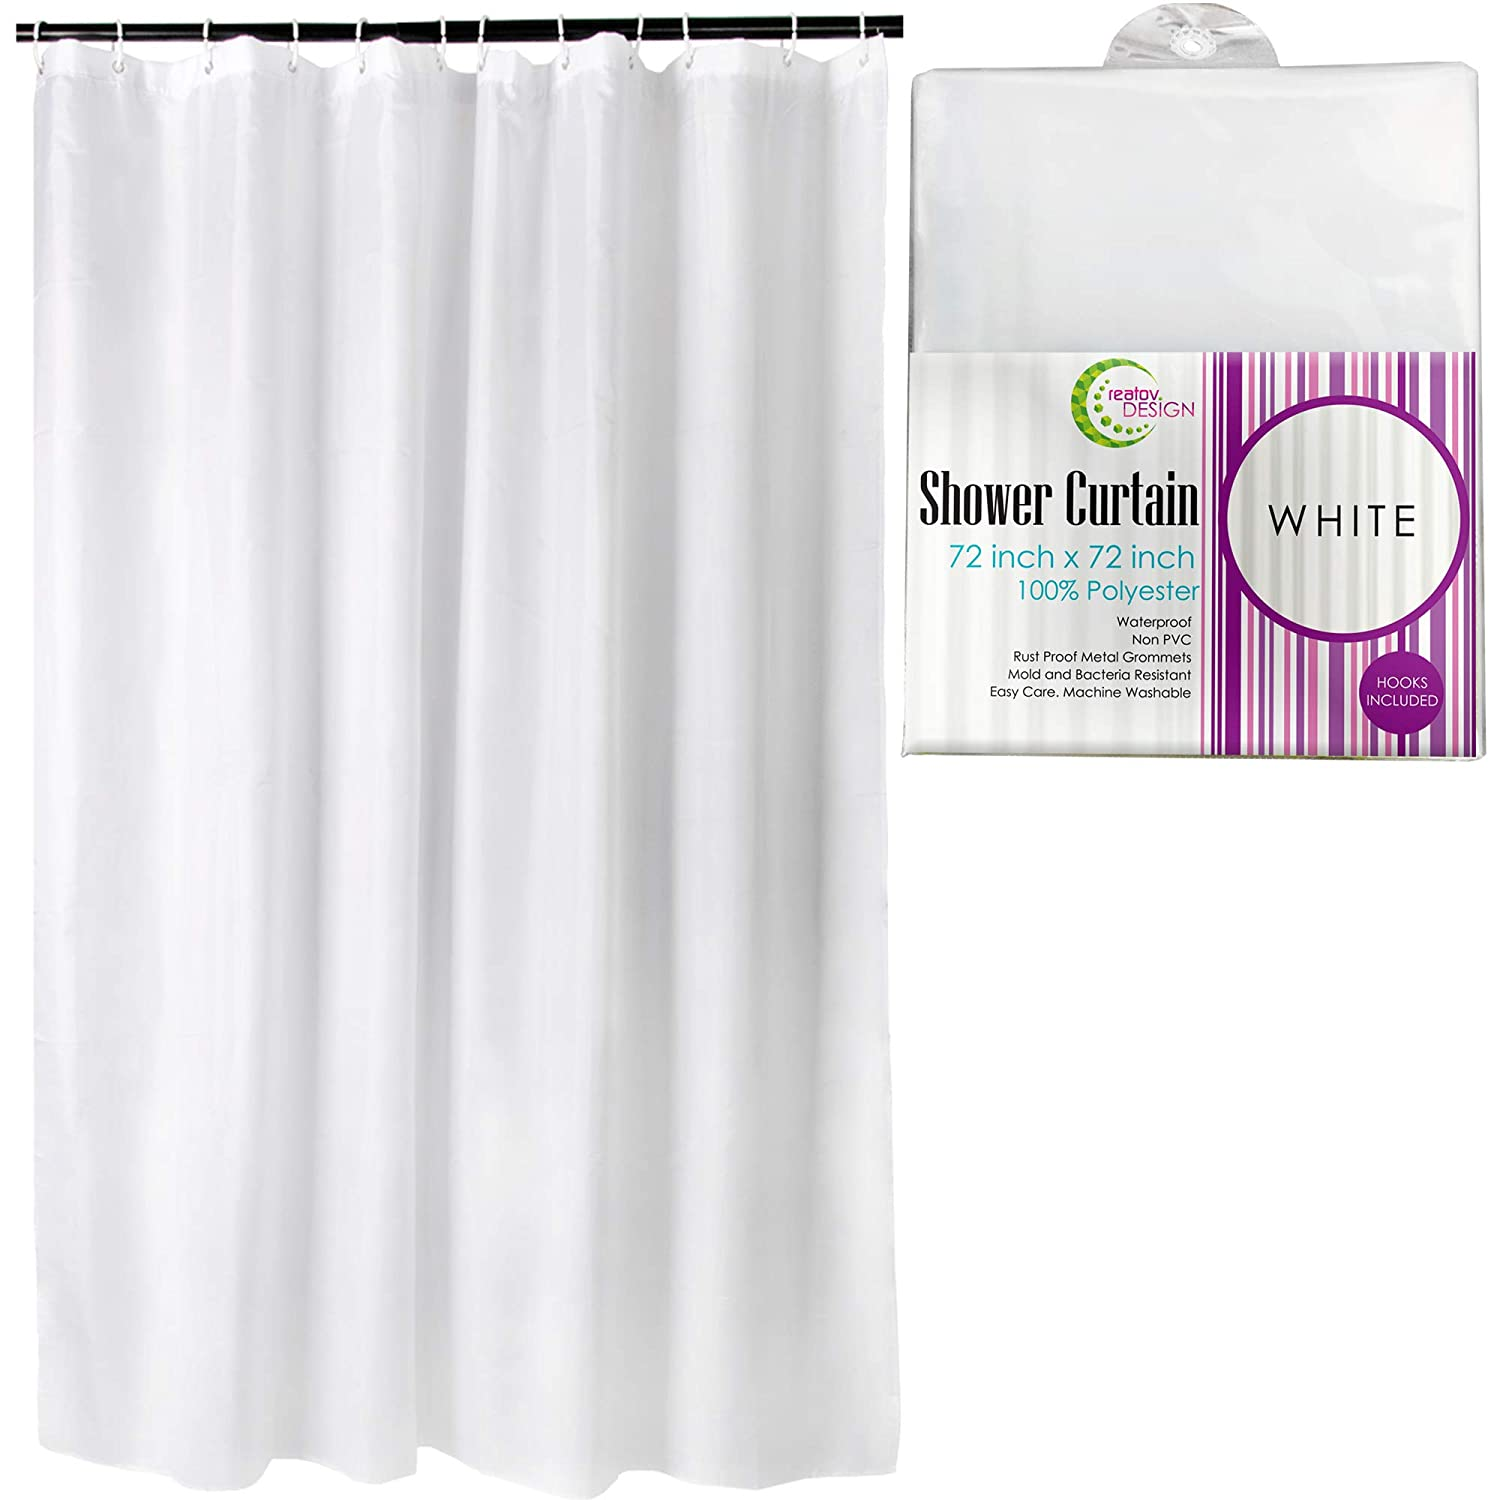 Mildew Resistant Fabric Shower Curtain - 72x72 White polyester Curtain for Bathroom - Waterproof Odorless Eco Friendly Anti Bacterial - Heavy Duty Metal Grommets - Creatov Design SYNCHKG109565